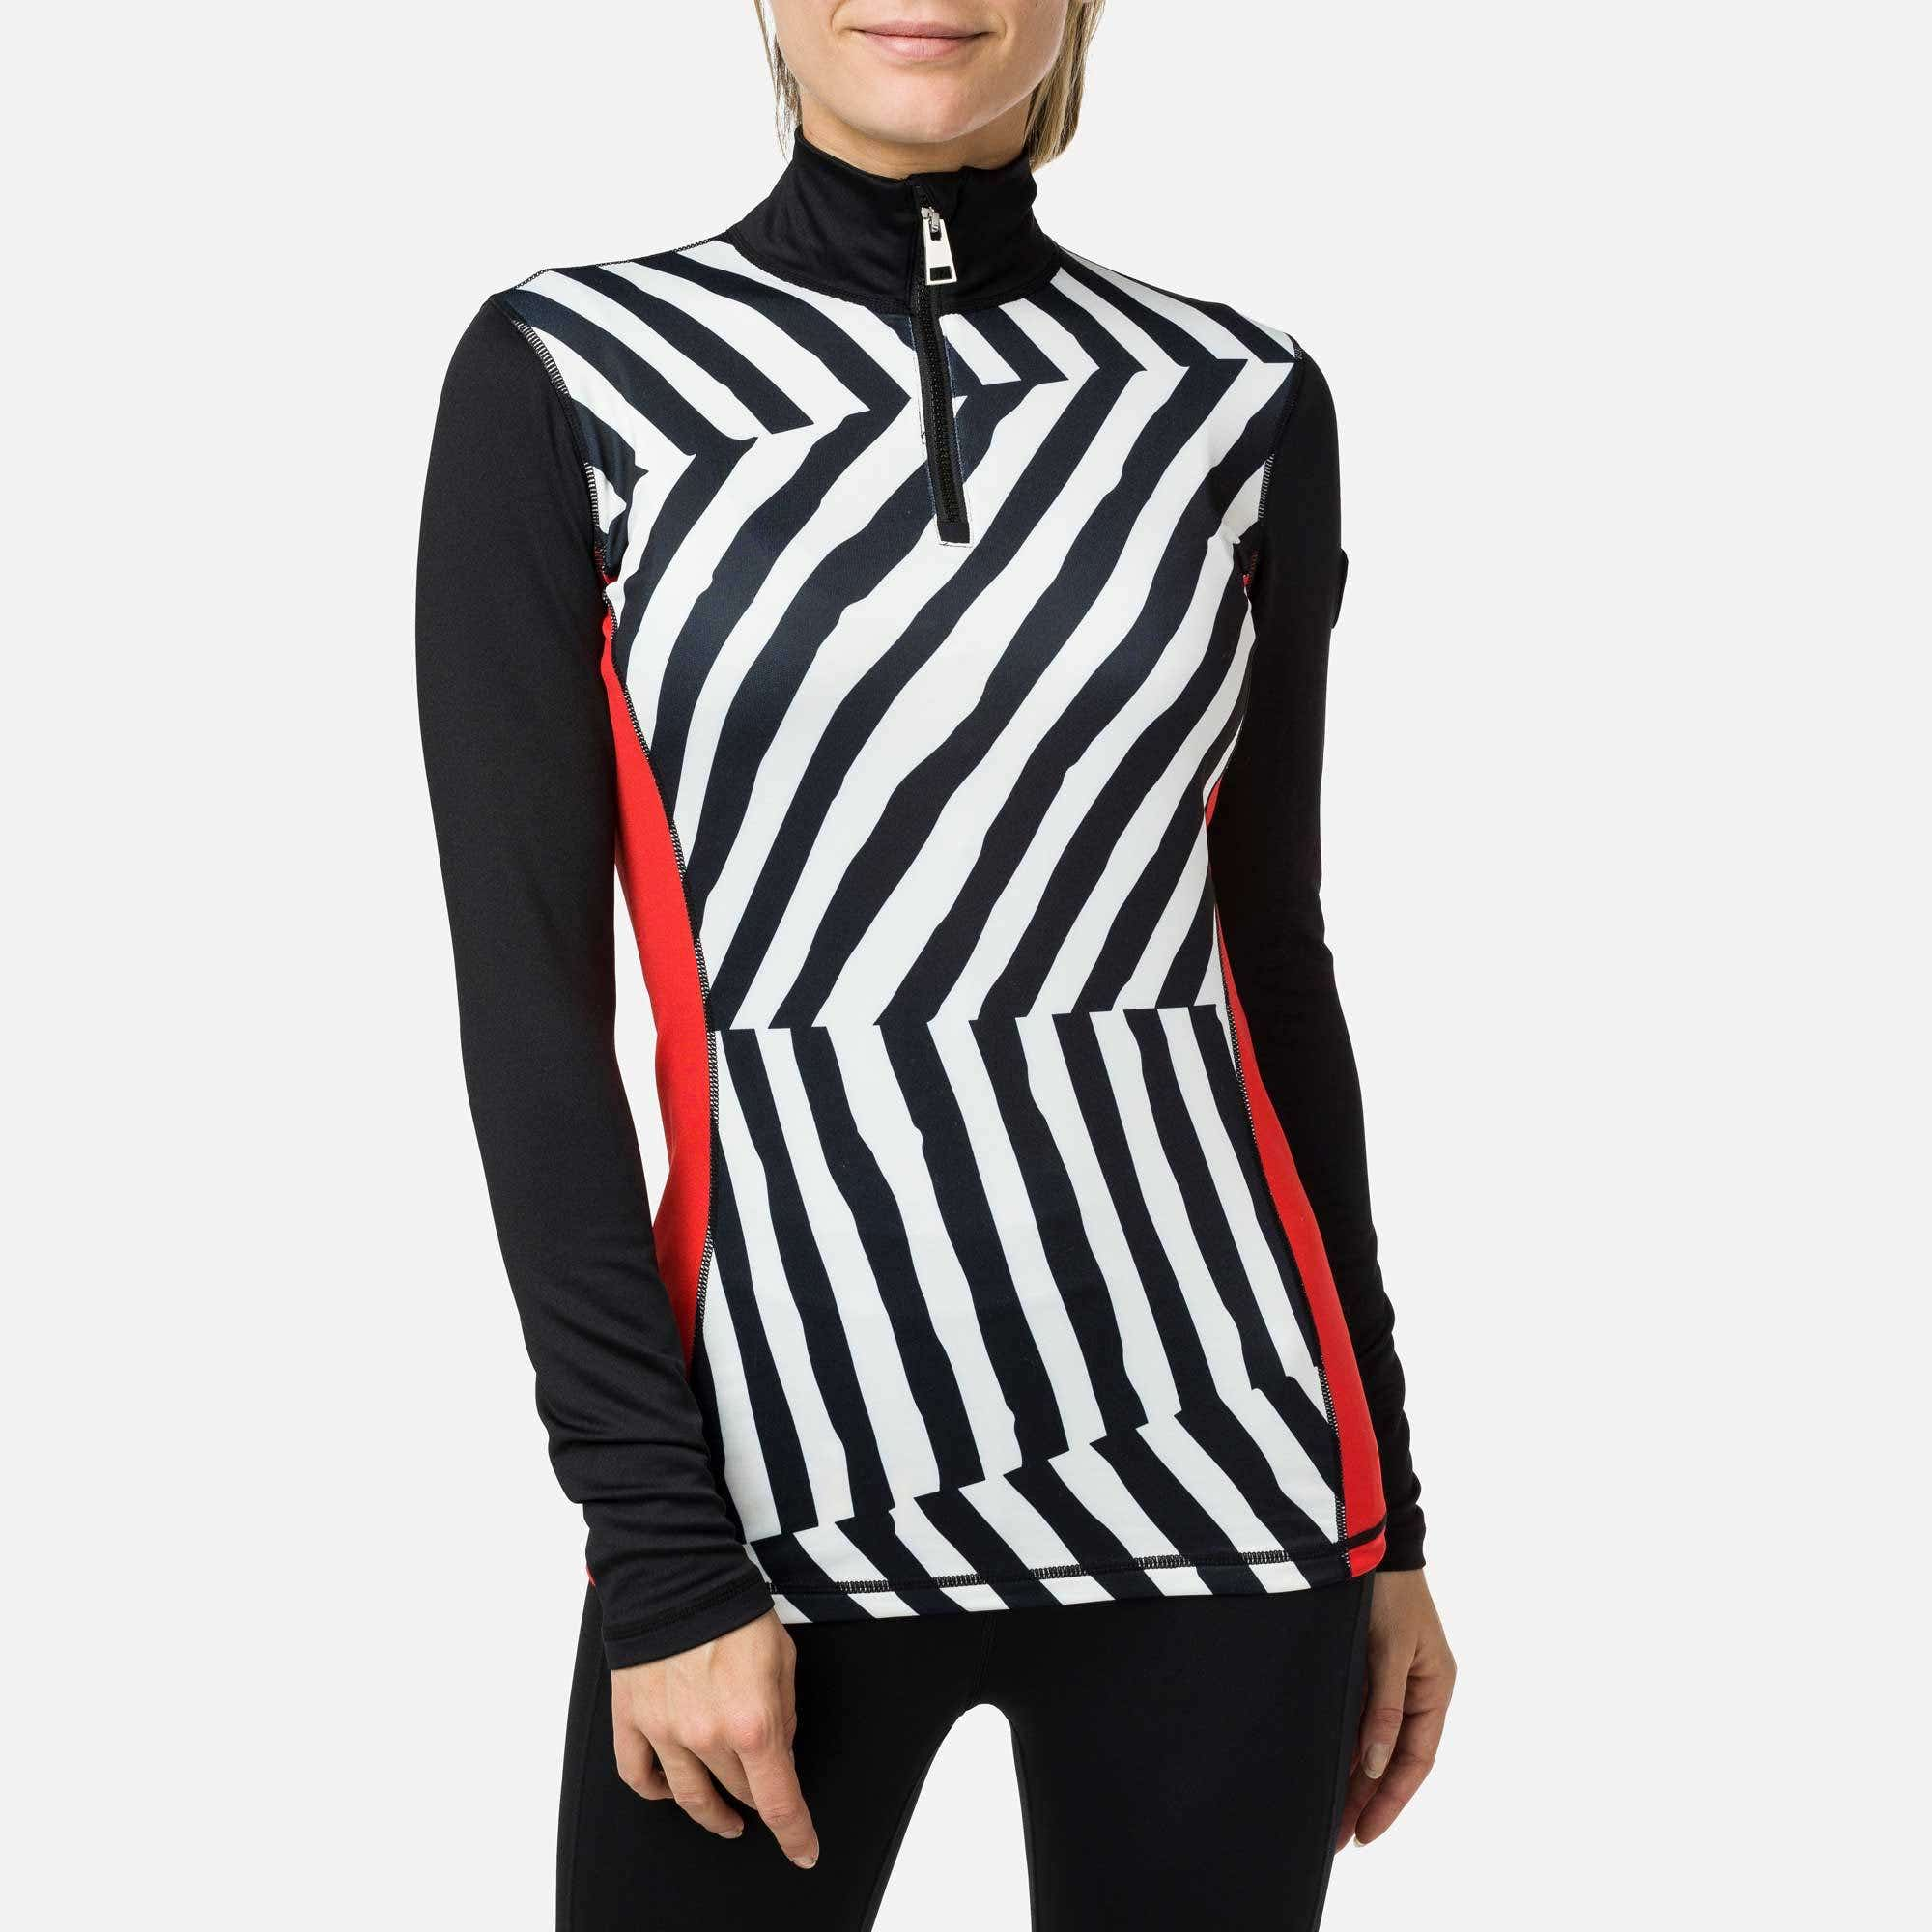 Image of JCC Women's Print Bessi 1/2 Zip Layer